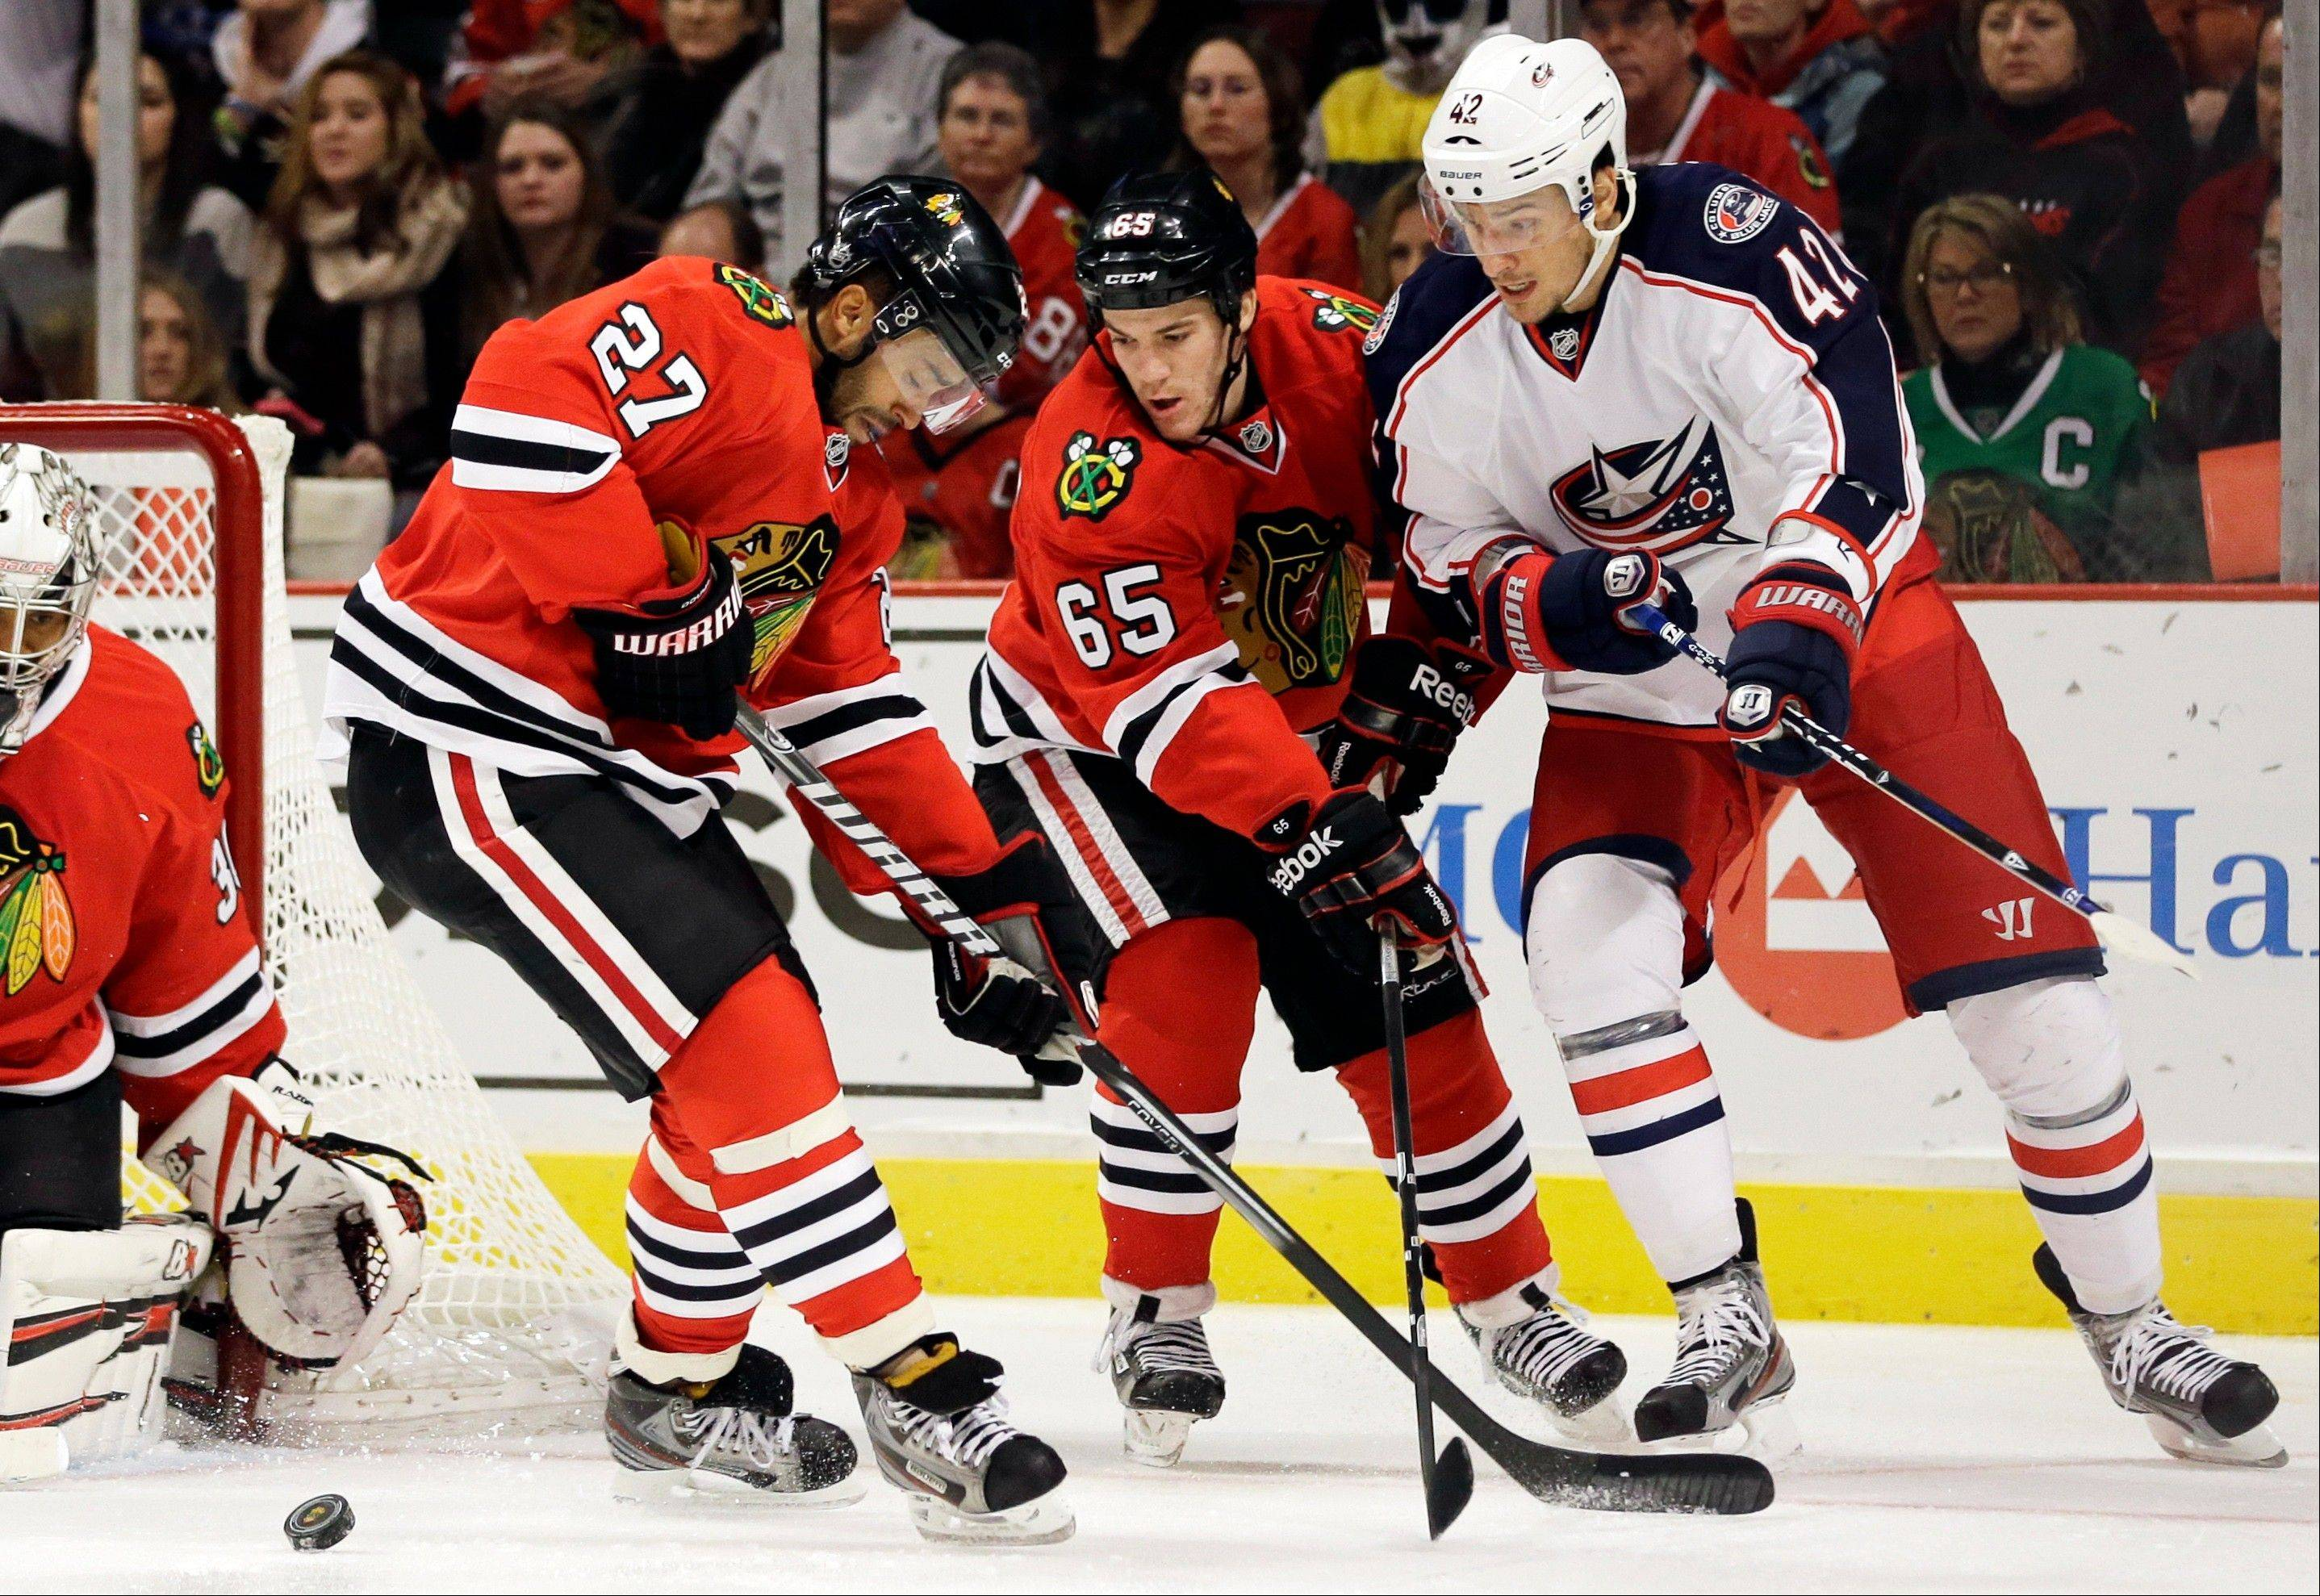 Columbus Blue Jackets' Artem Anisimov, right, battles for the puck with Chicago Blackhawks' Andrew Shaw and Johnny Oduya.